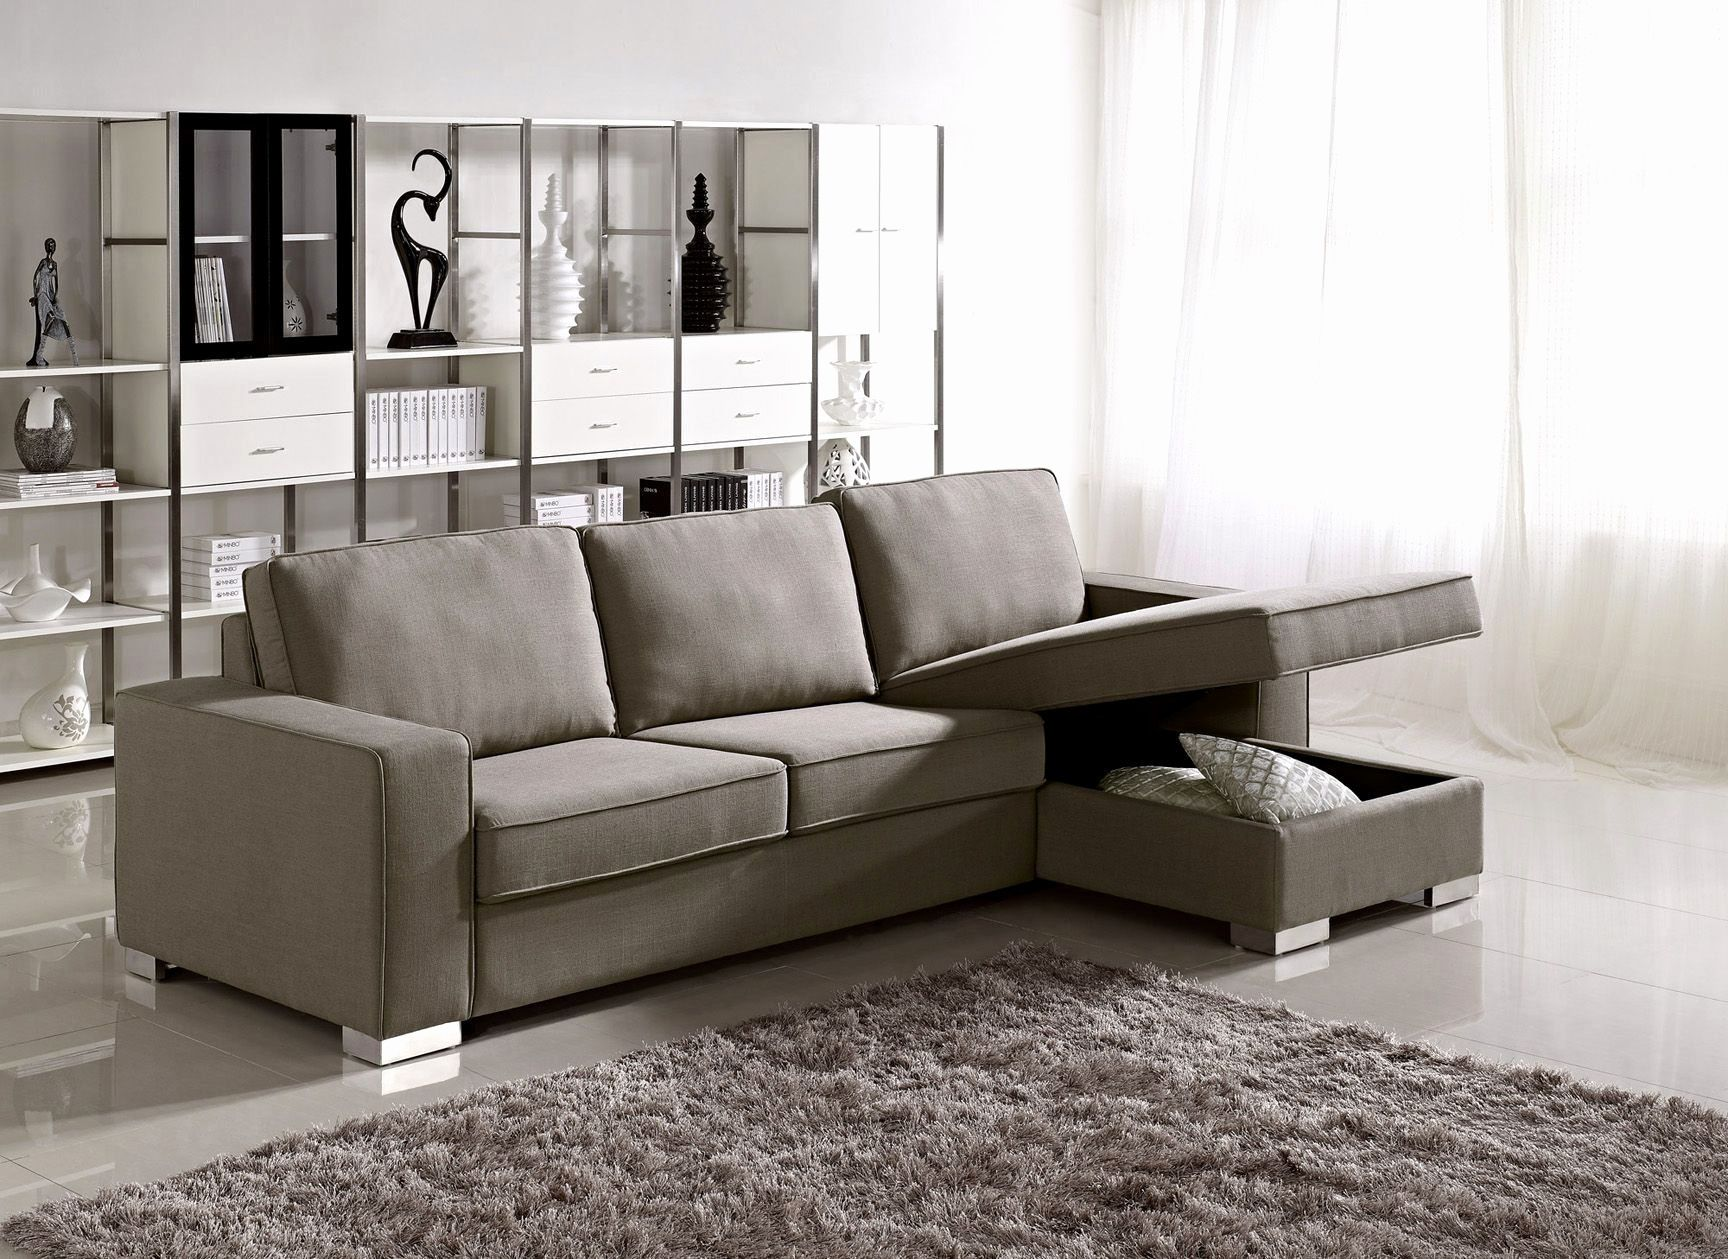 Unique Best Apartment Sofas Photograpy Best Apartment Sofas Living